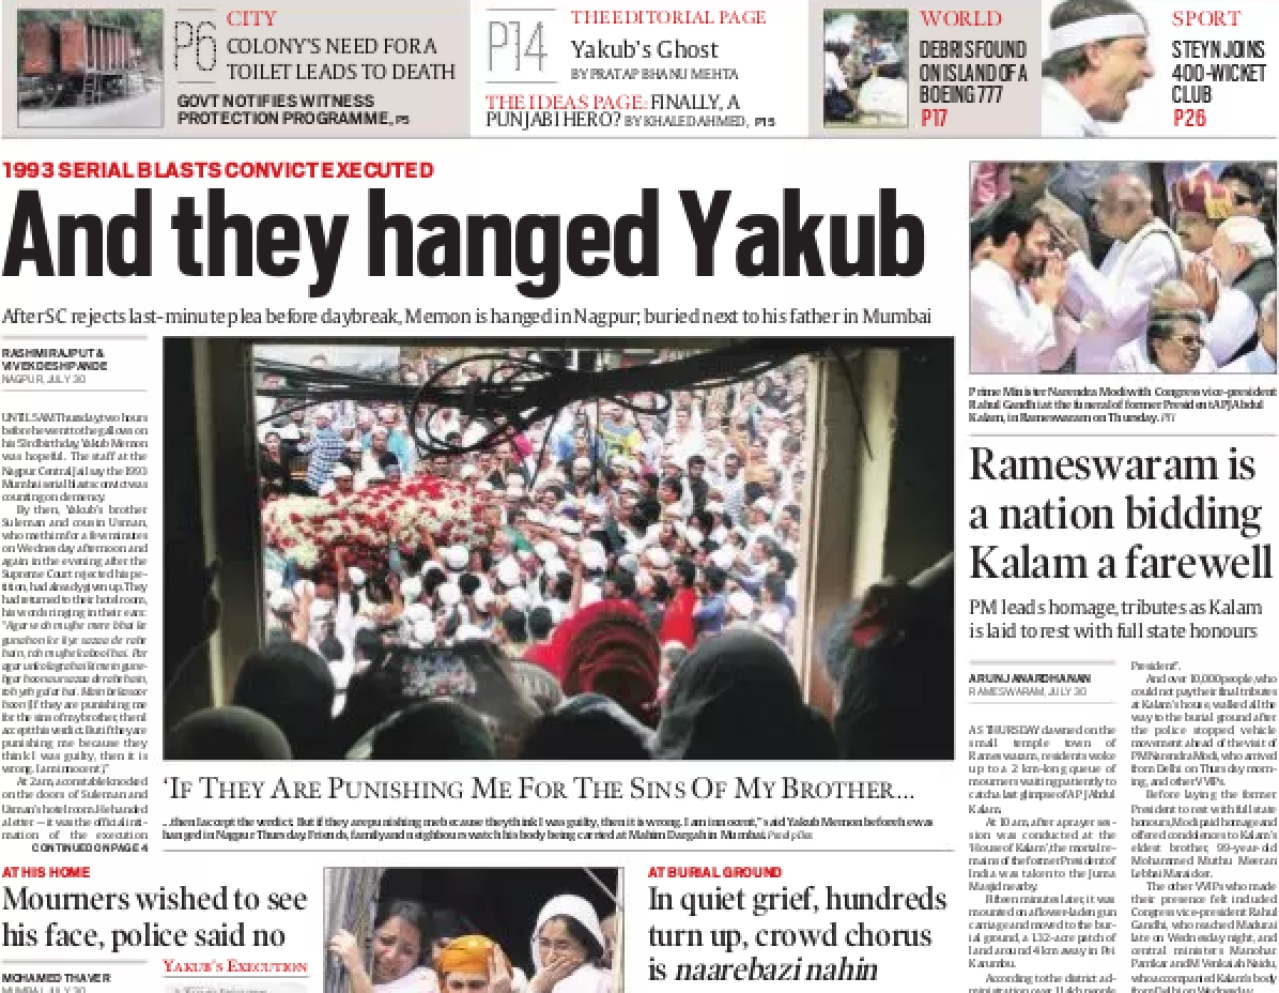 (Screengrab from the cover page of Indian Express, 31 July 2015)